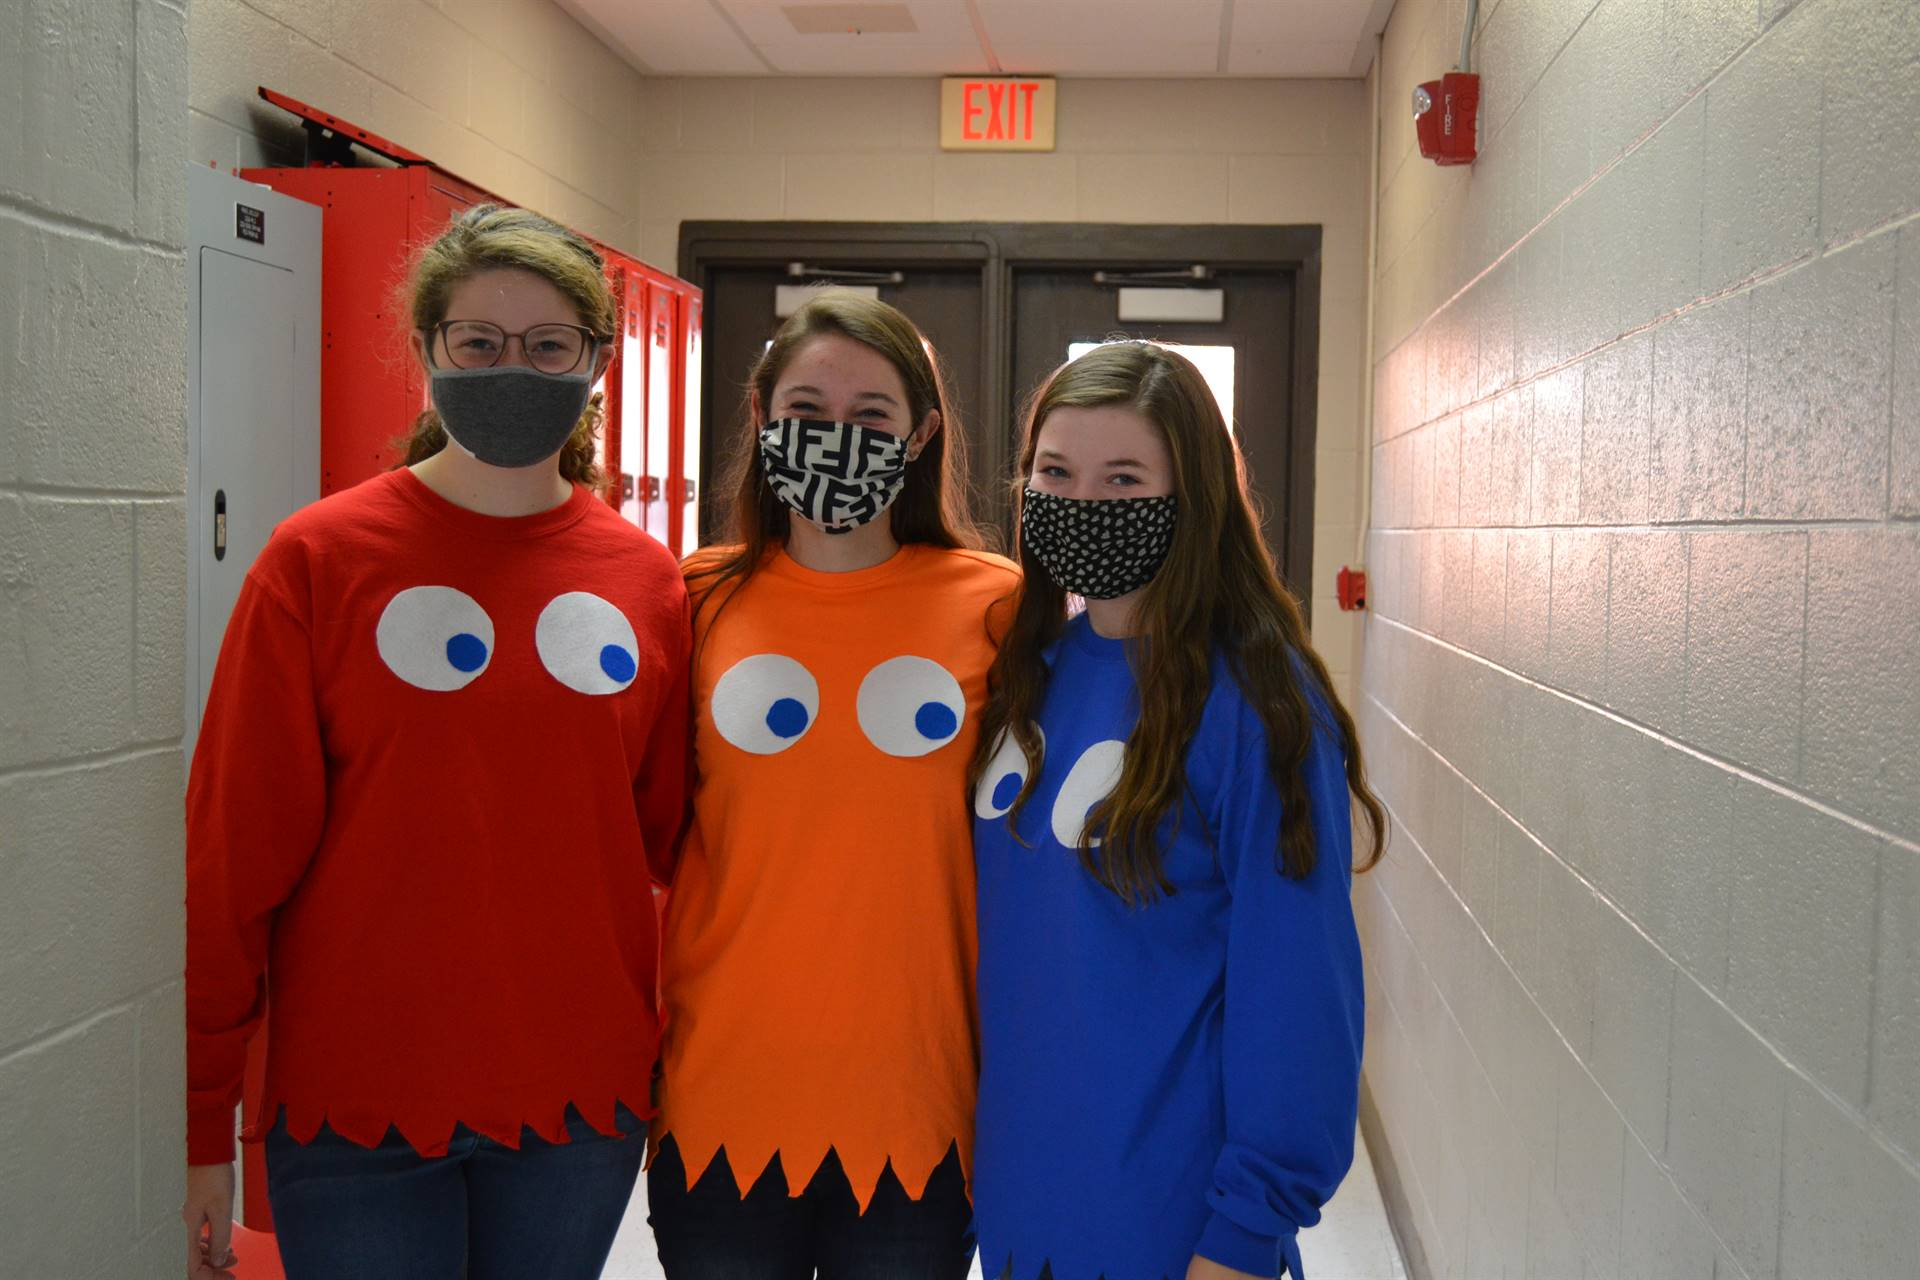 Three ghosts from Pac-man.